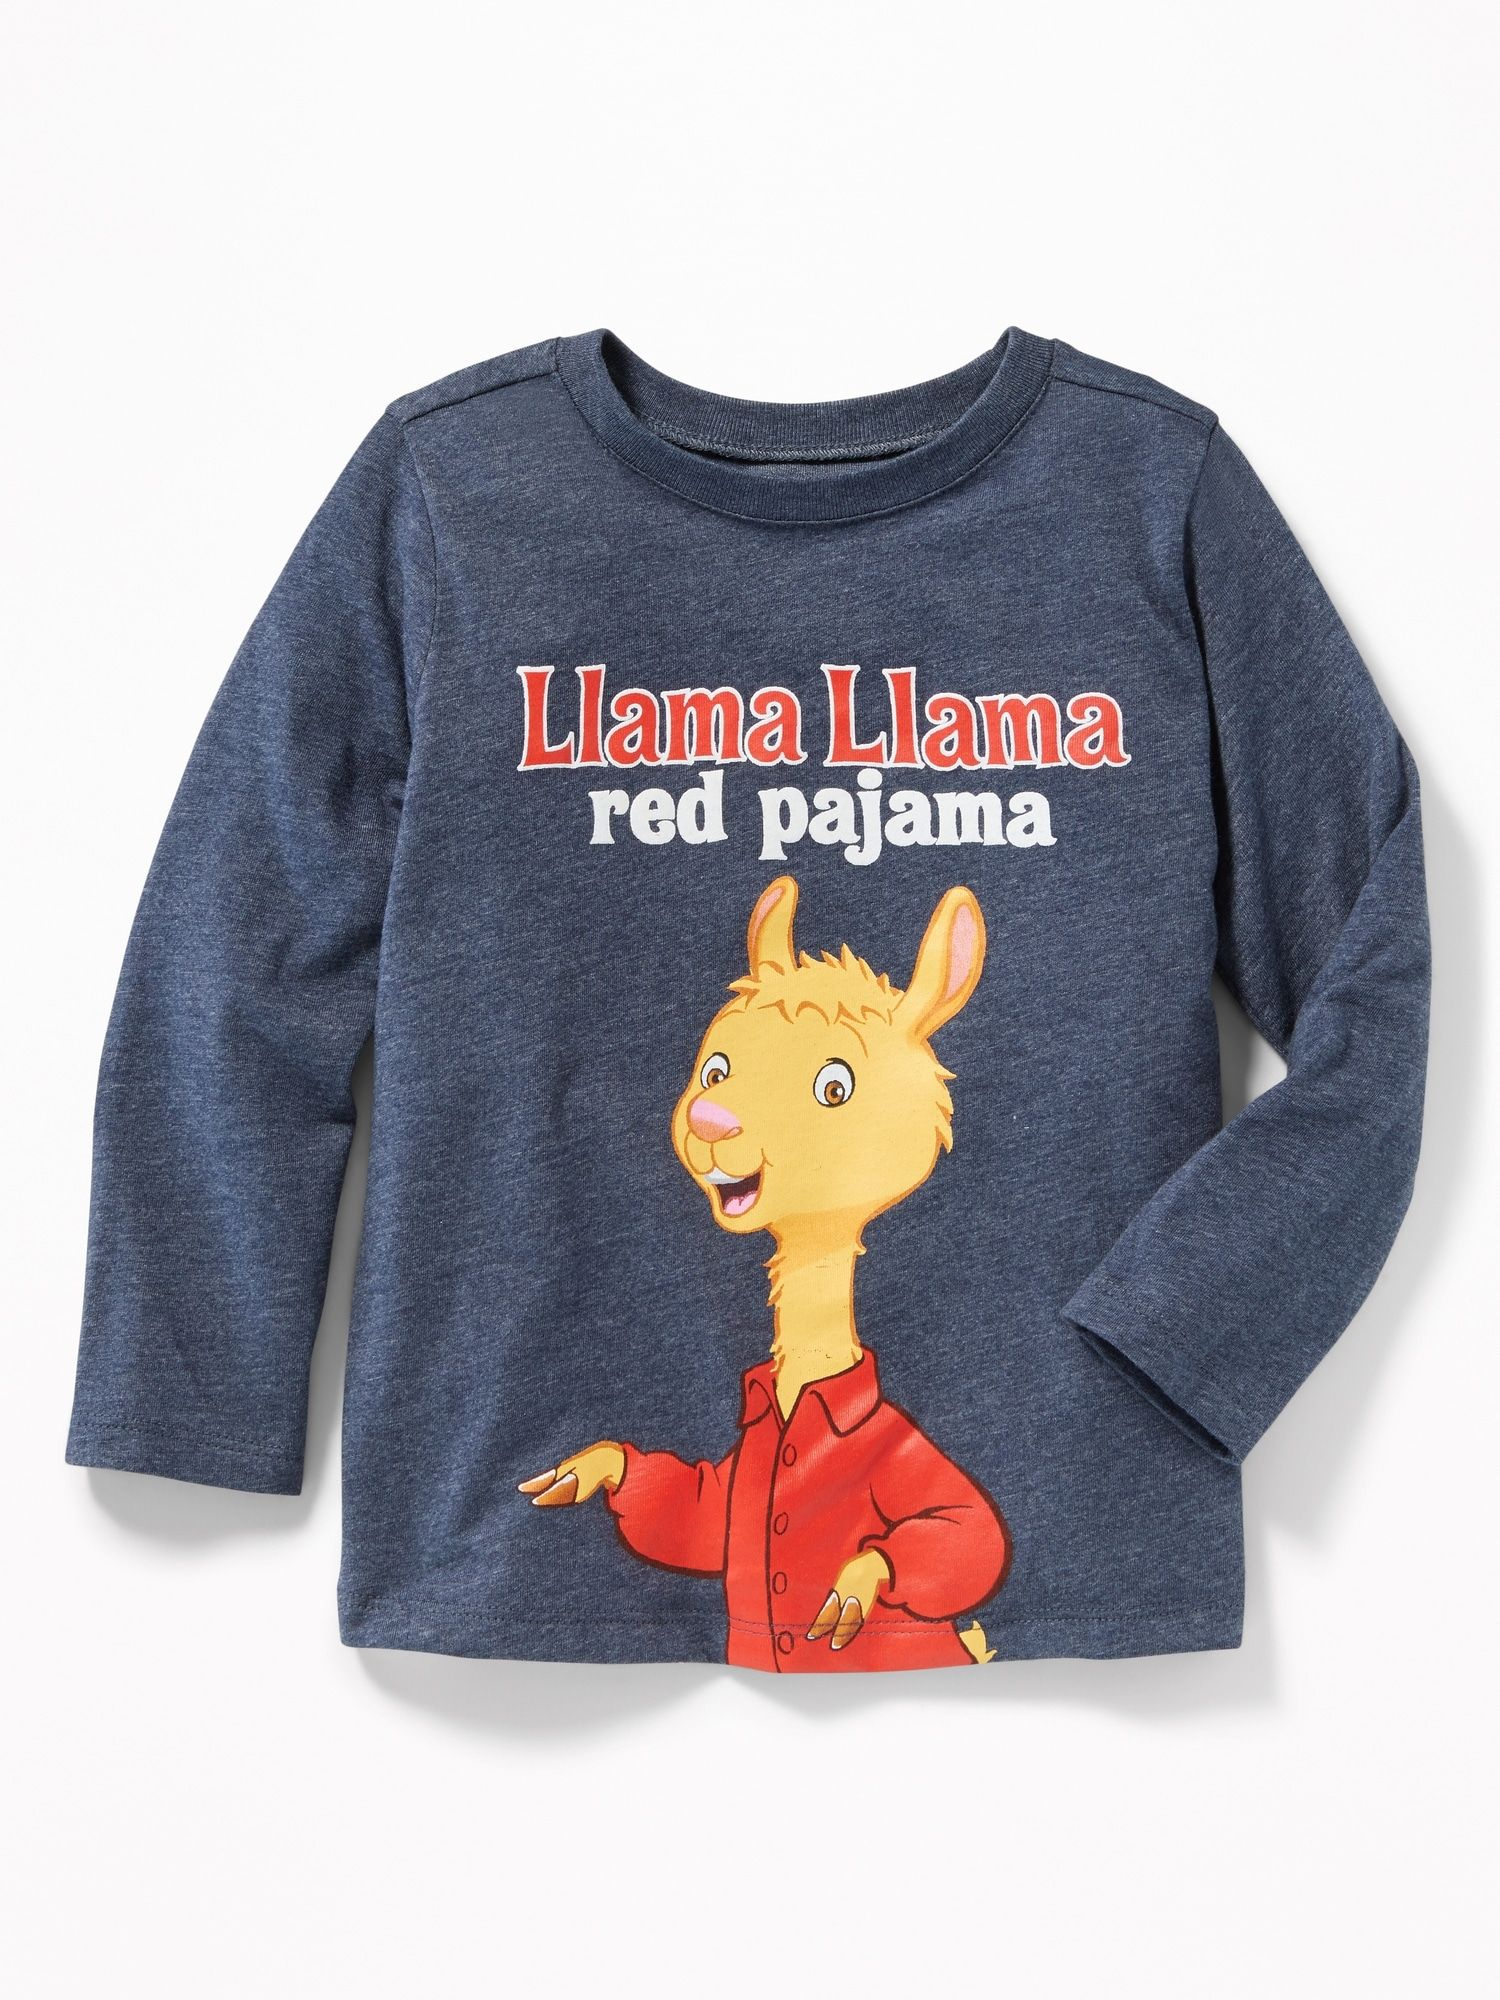 Llama Llama Red Pajama Tee For Toddler Boys